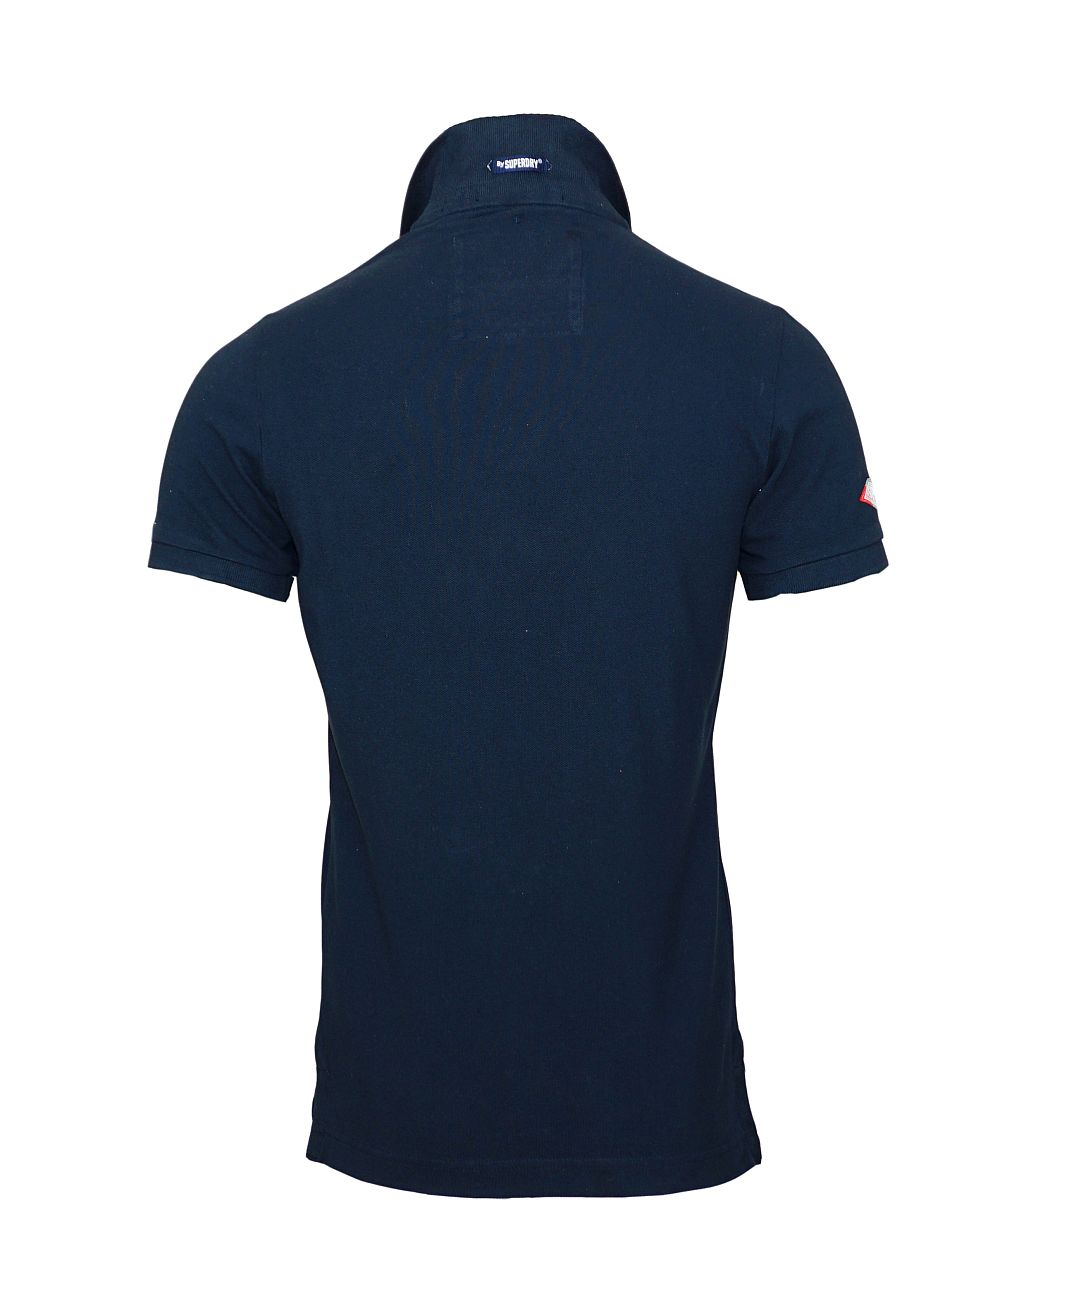 Superdry Poloshirt Polohemd Classic Pique Polo M11000NS Eclipse Navy F18-SDP1